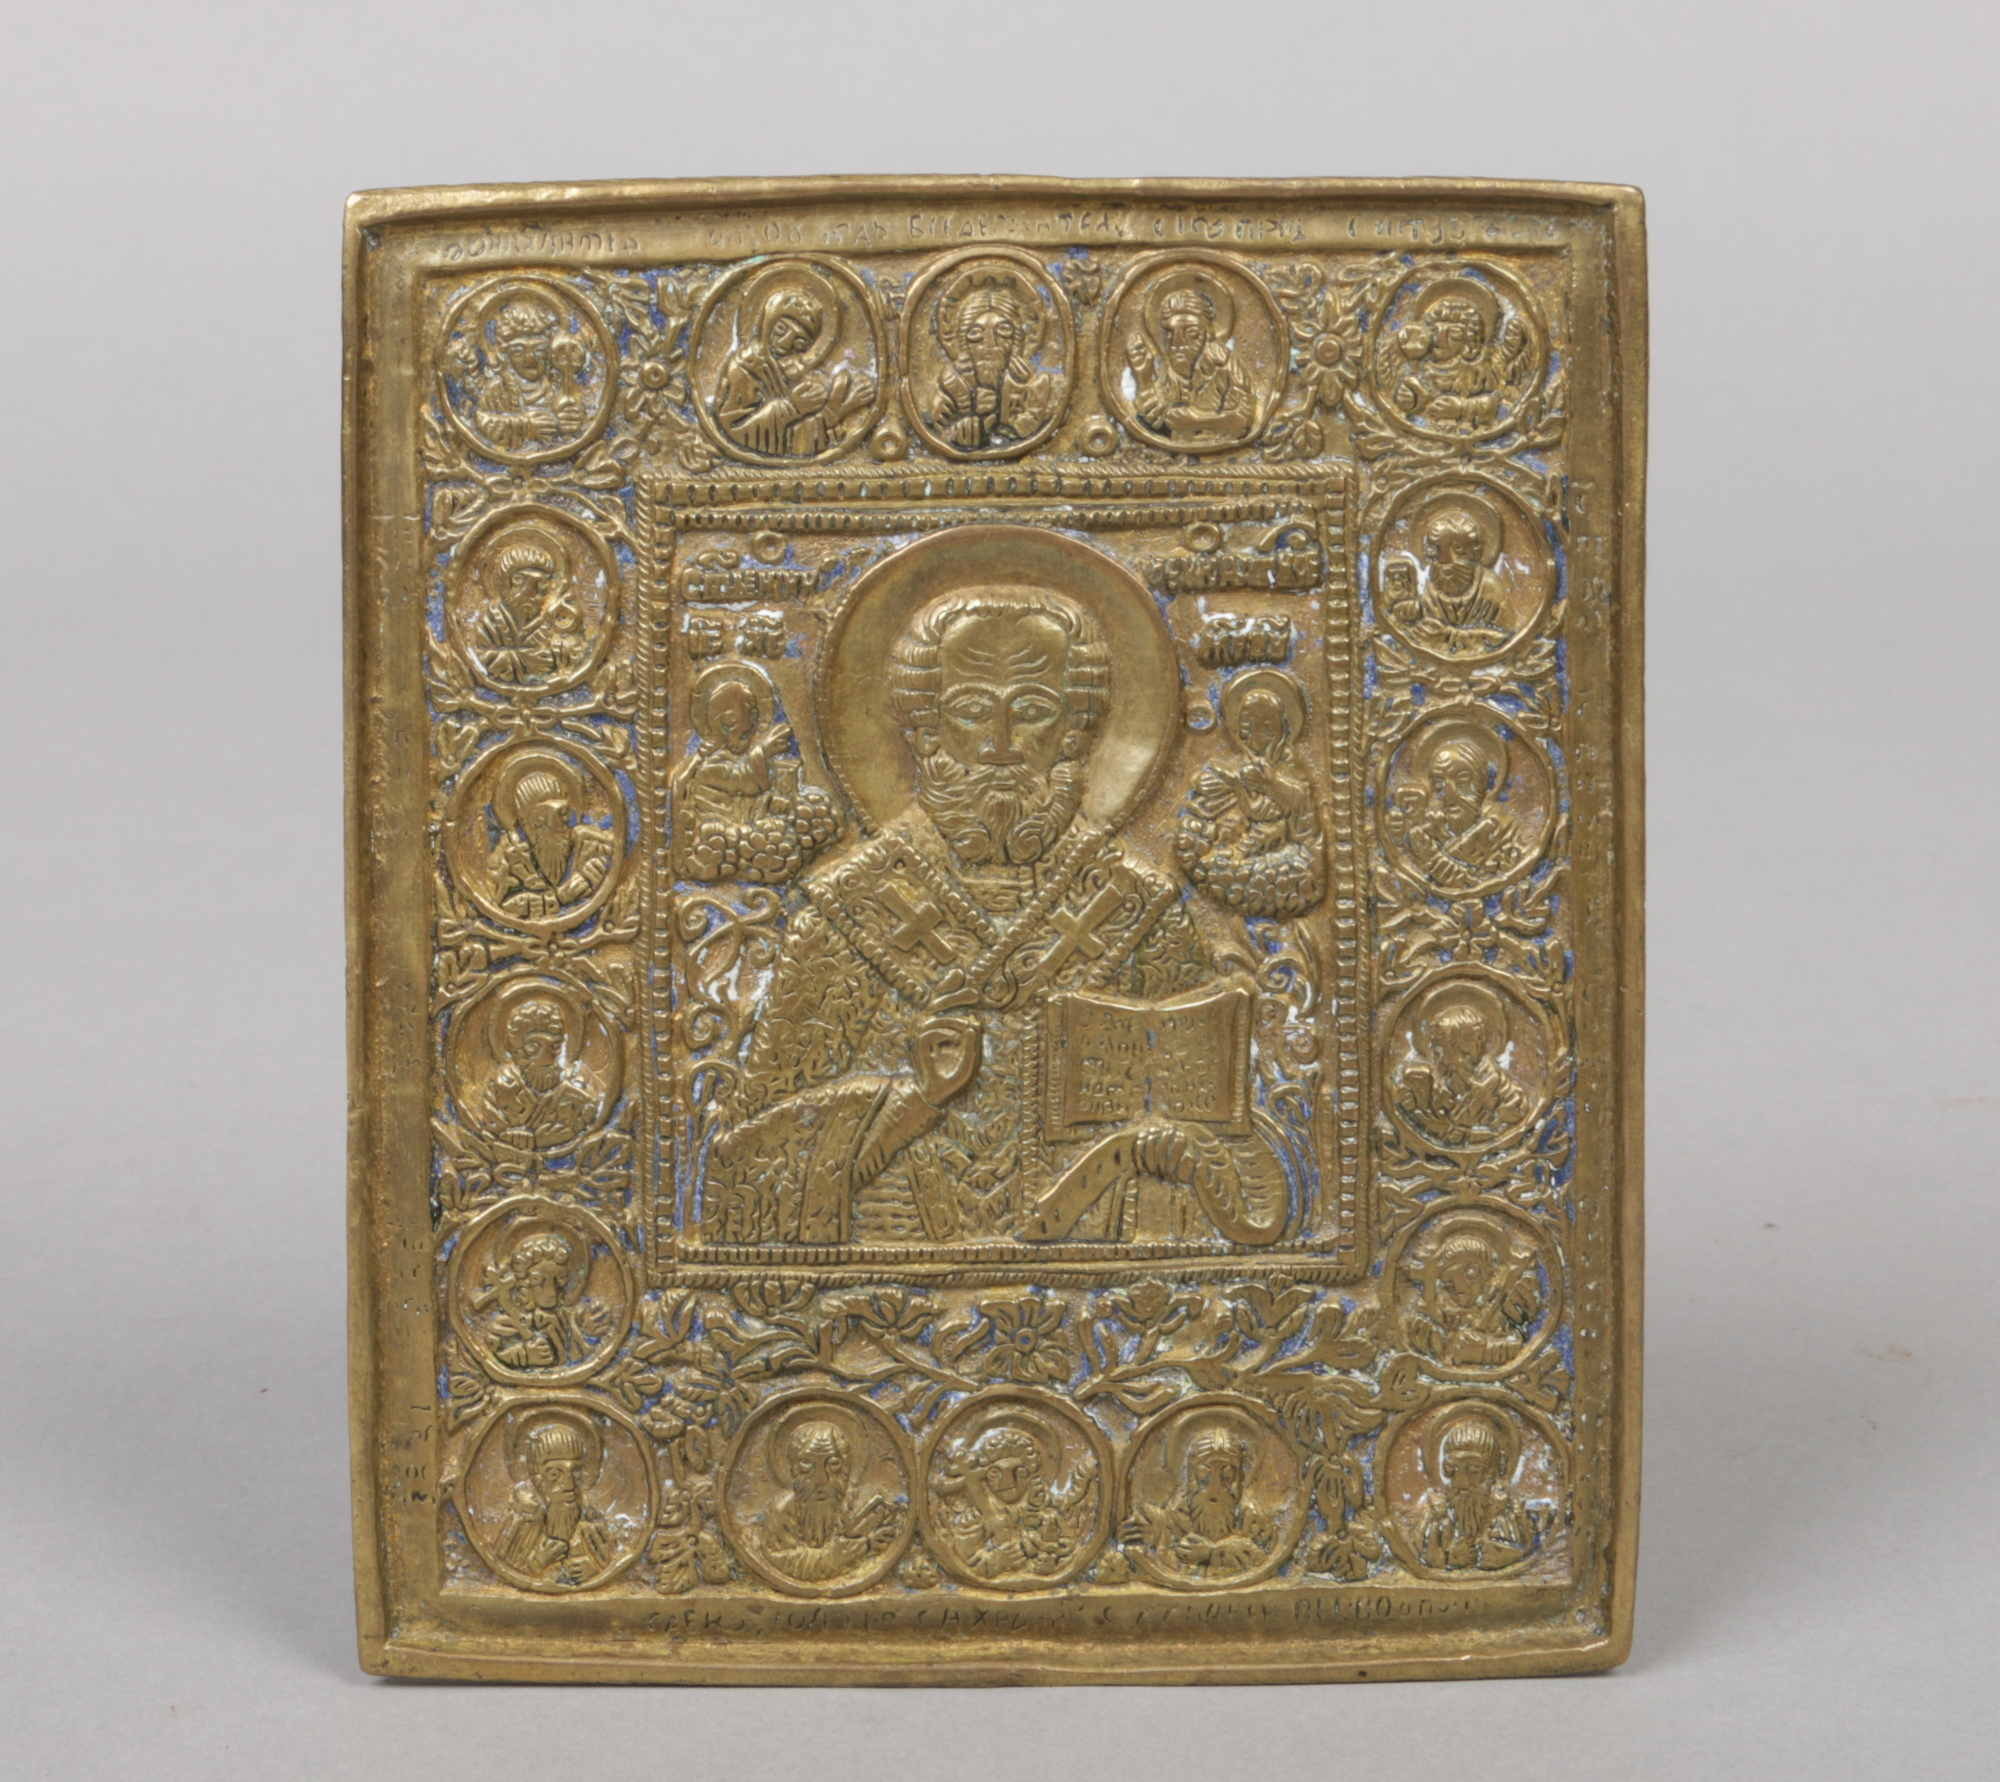 Lot 308 - A 19th century Russian bronze relief cast domestic icon decorated with Saints and having Cyrillic